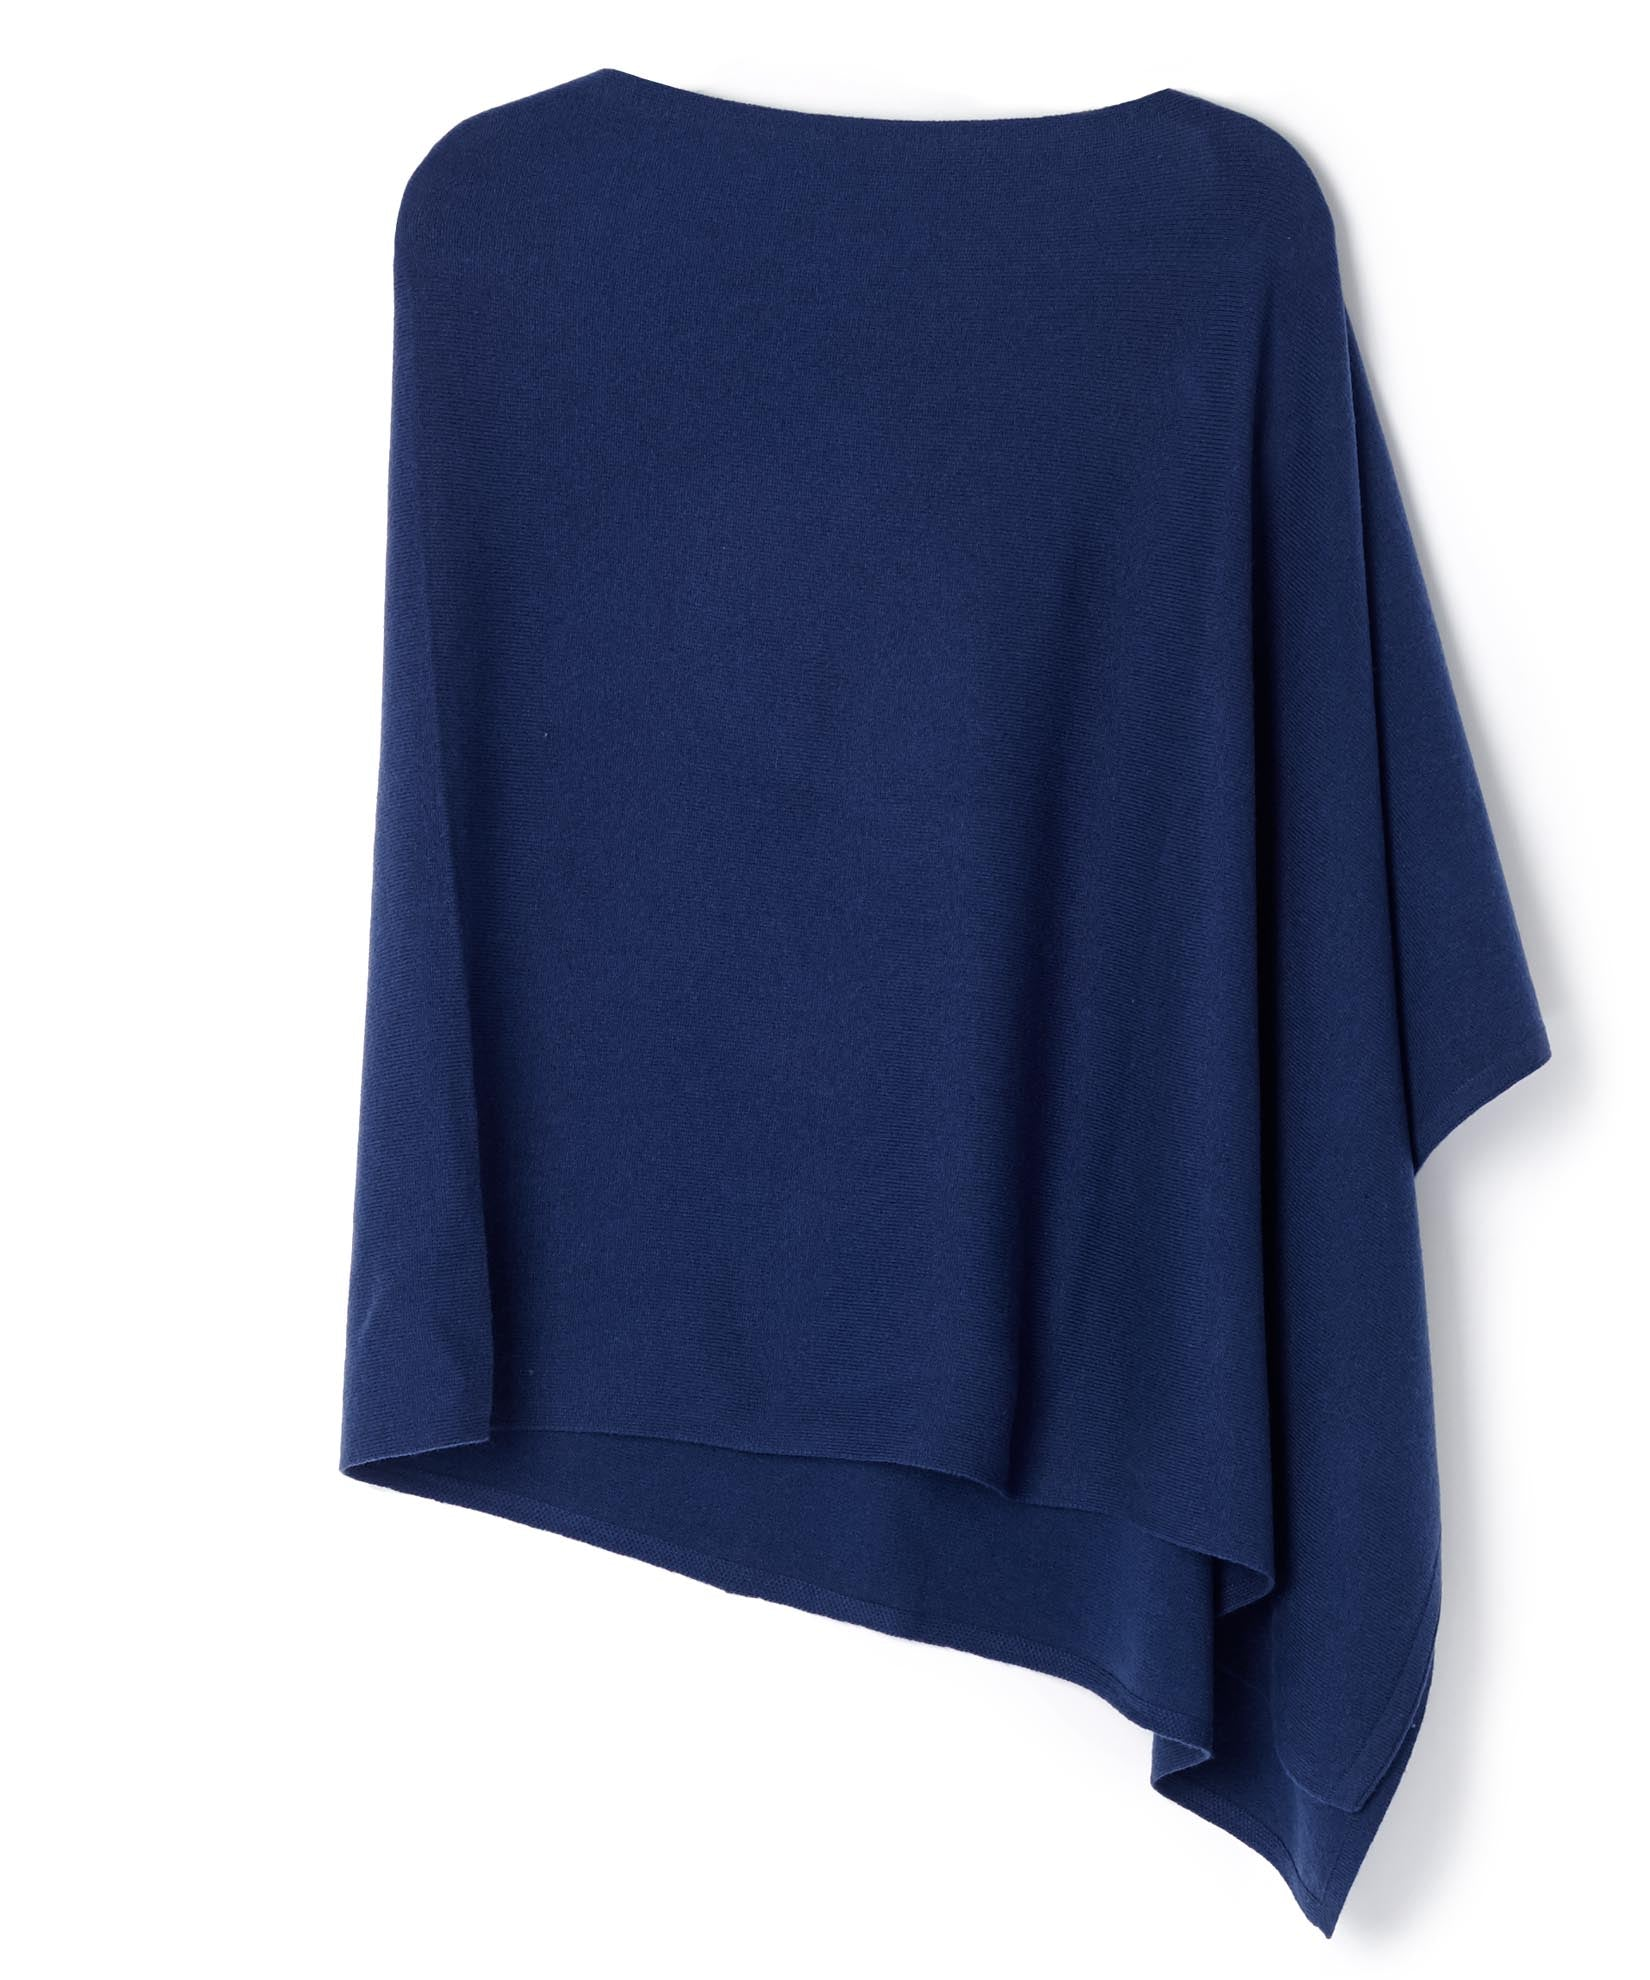 Bright Navy - Wool & Cashmere Colorblock Topper